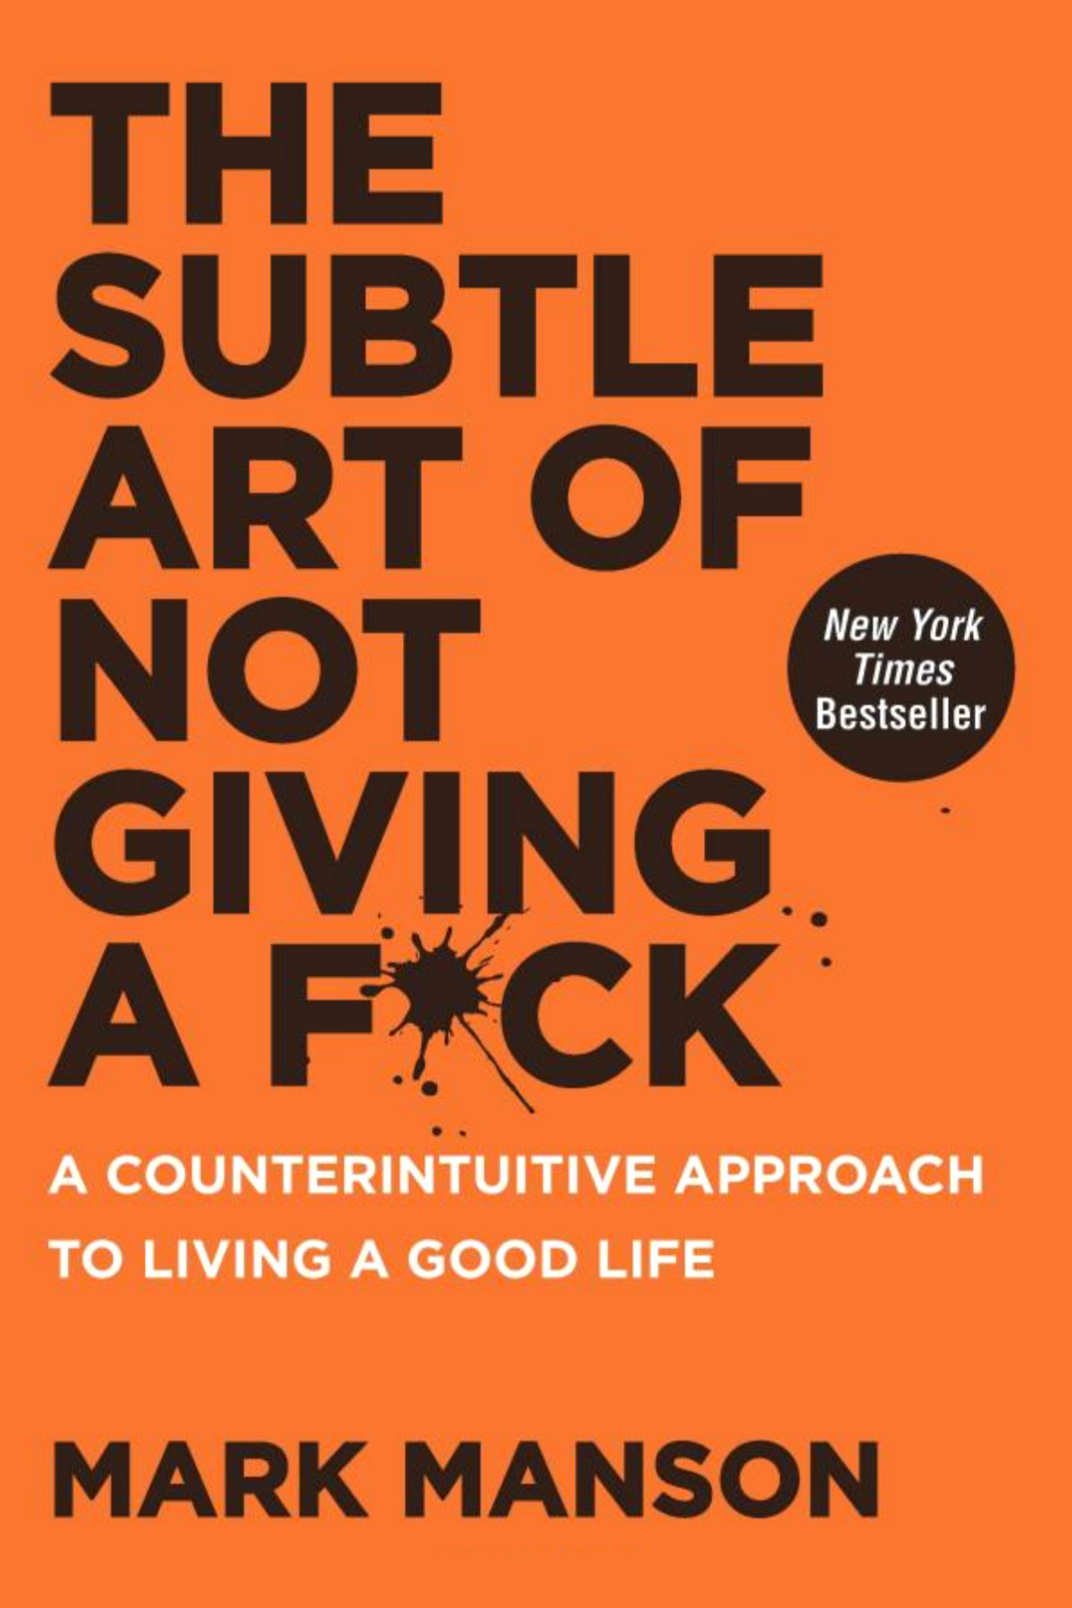 The Subtle Art o Not Giving a F*ck: A Counterintuitive Approach to Living a Good Life